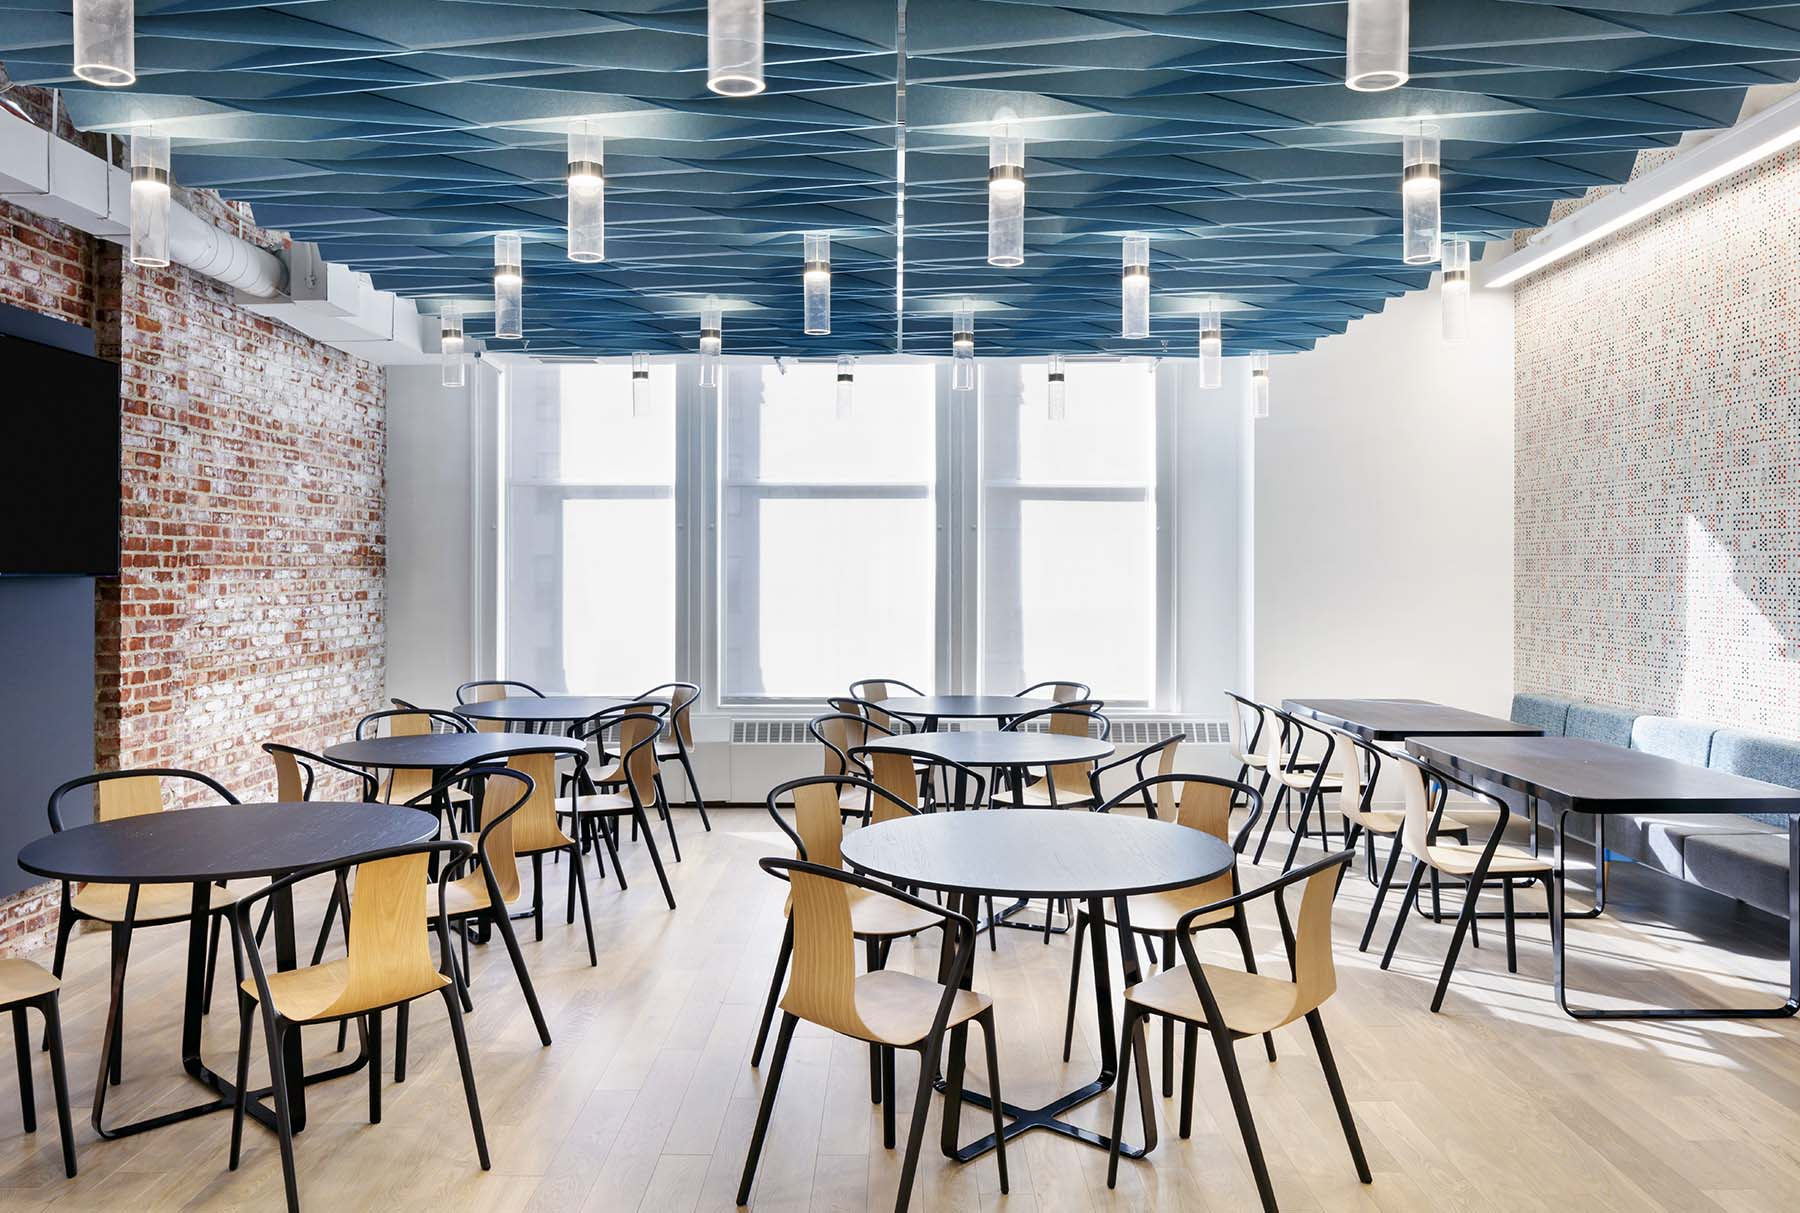 SoftFold® acoustical system with integrated lighting